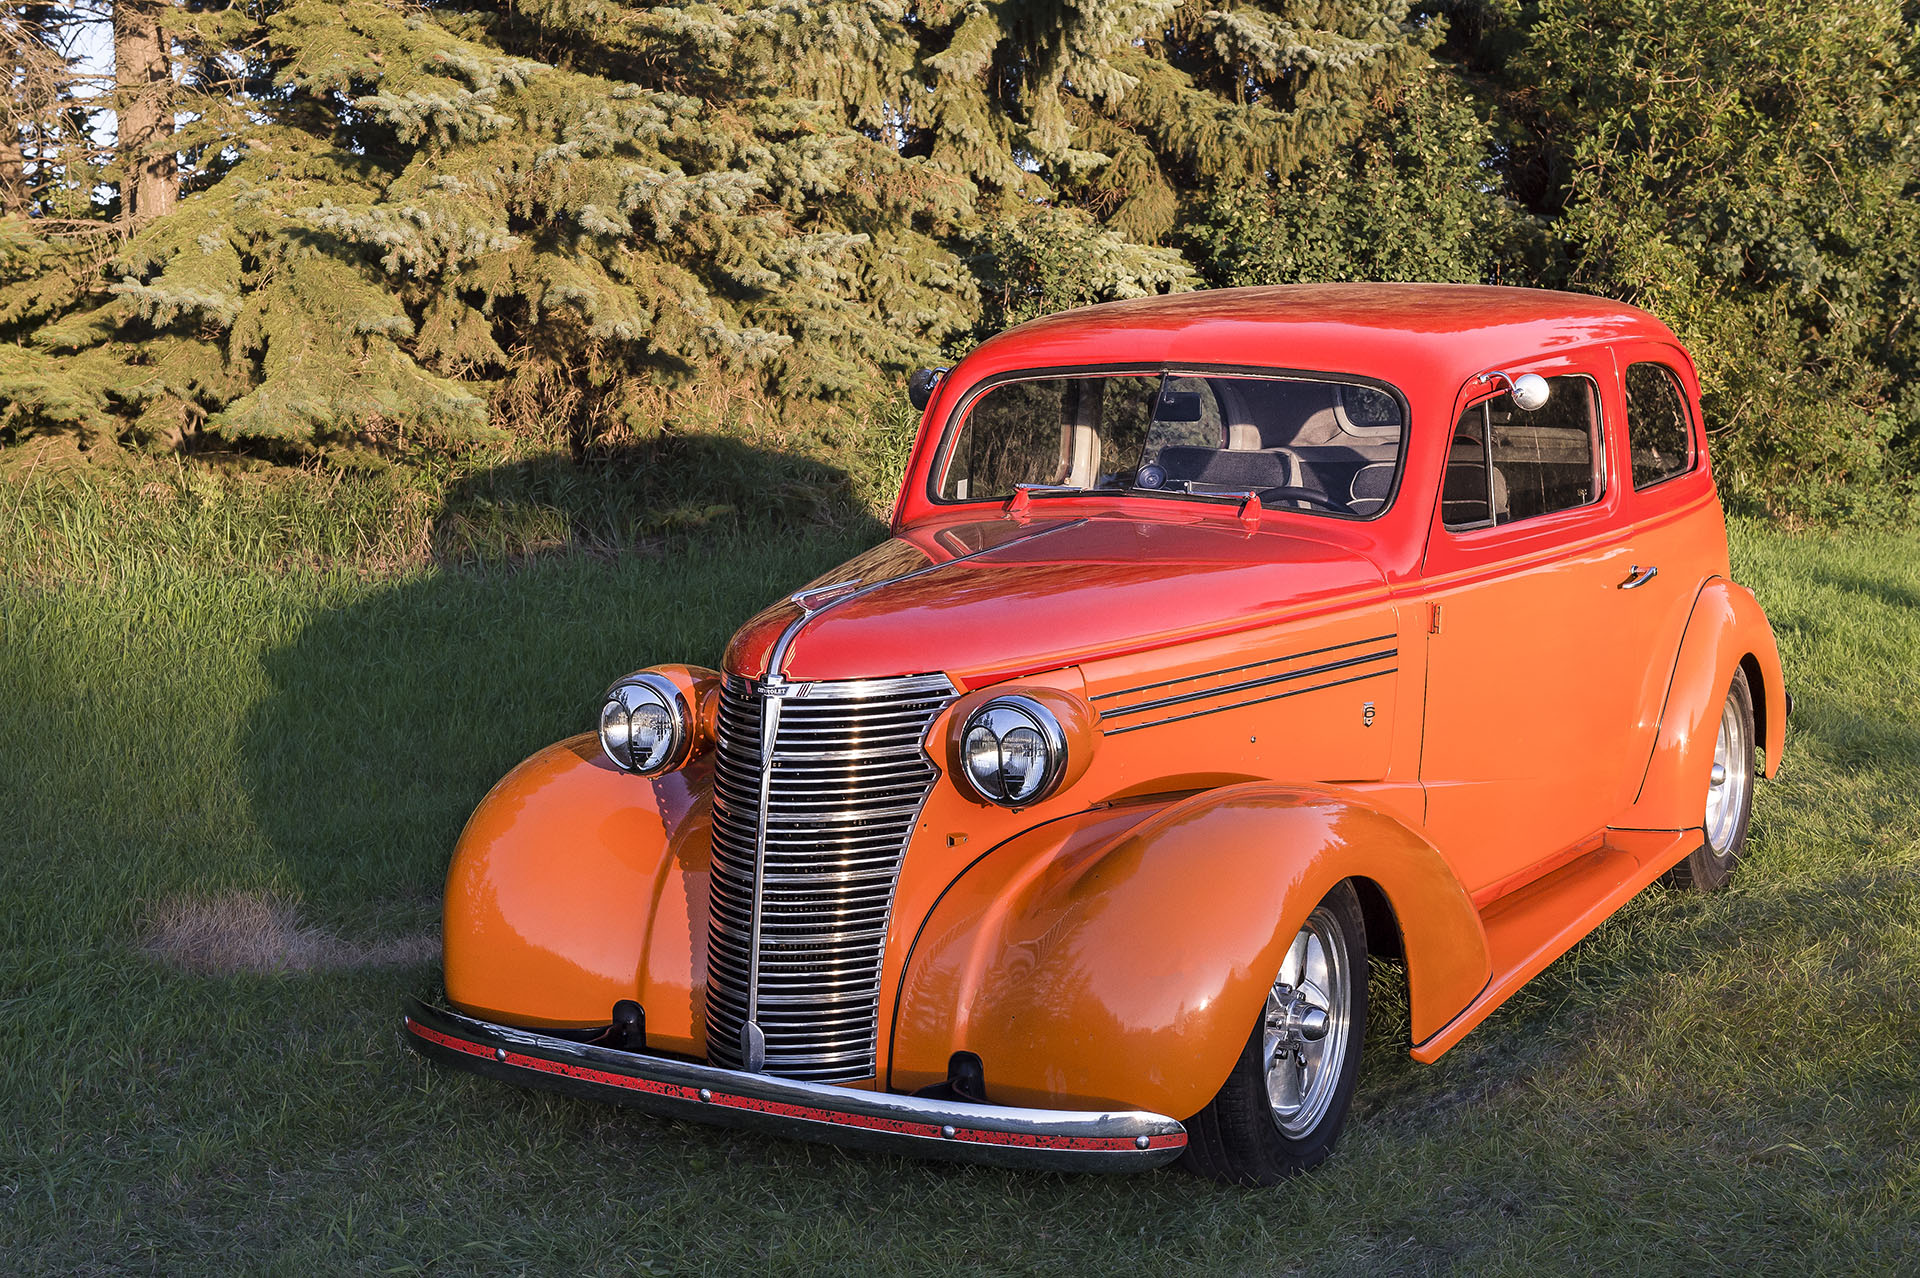 """1938 – Chevy Master Sedan - """" C Plus"""" -    Powered by a 350/290 hp GM performance Crate Engine. Originally built in Regina at the GM Assembly Plant purchased in Regina, Usually seen pulling a 1973 Boler Matching Trailer with Matching Mini Bike attached. Travelled as far as Spokane and Northwest States with the entire family. You can see this vehicle and others at regular Just Kruzin events"""